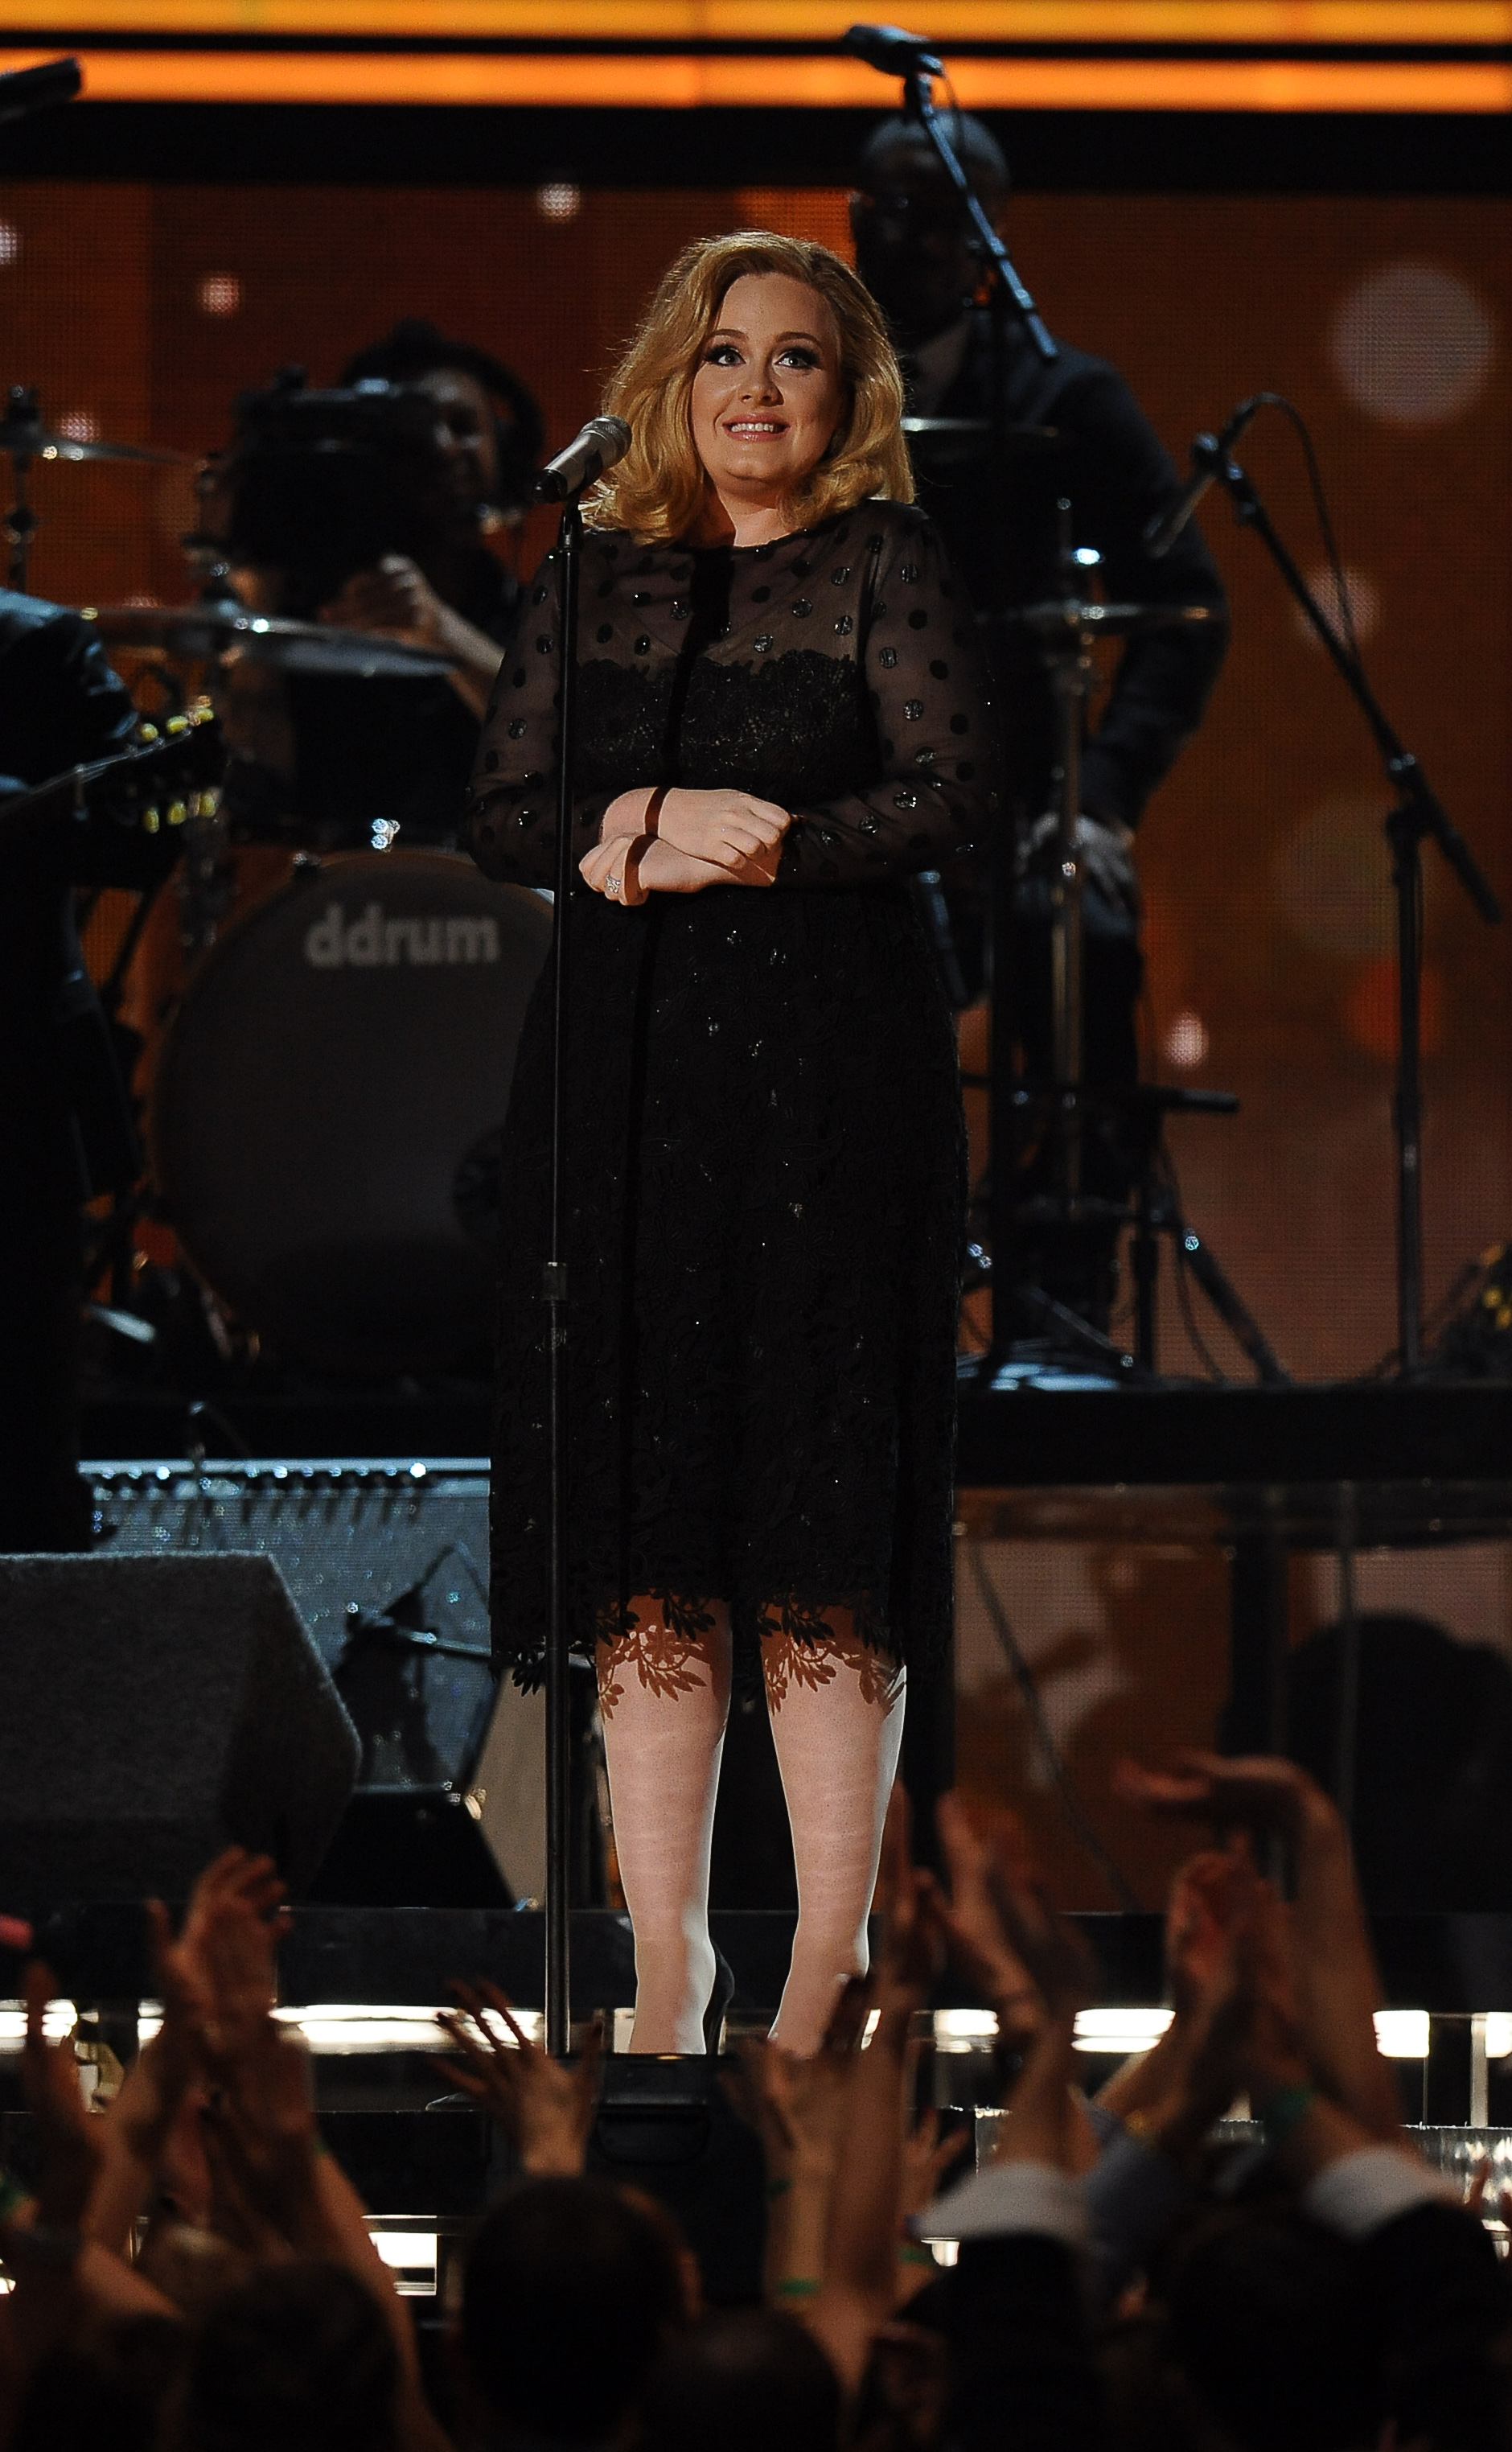 Adele took the stage mu